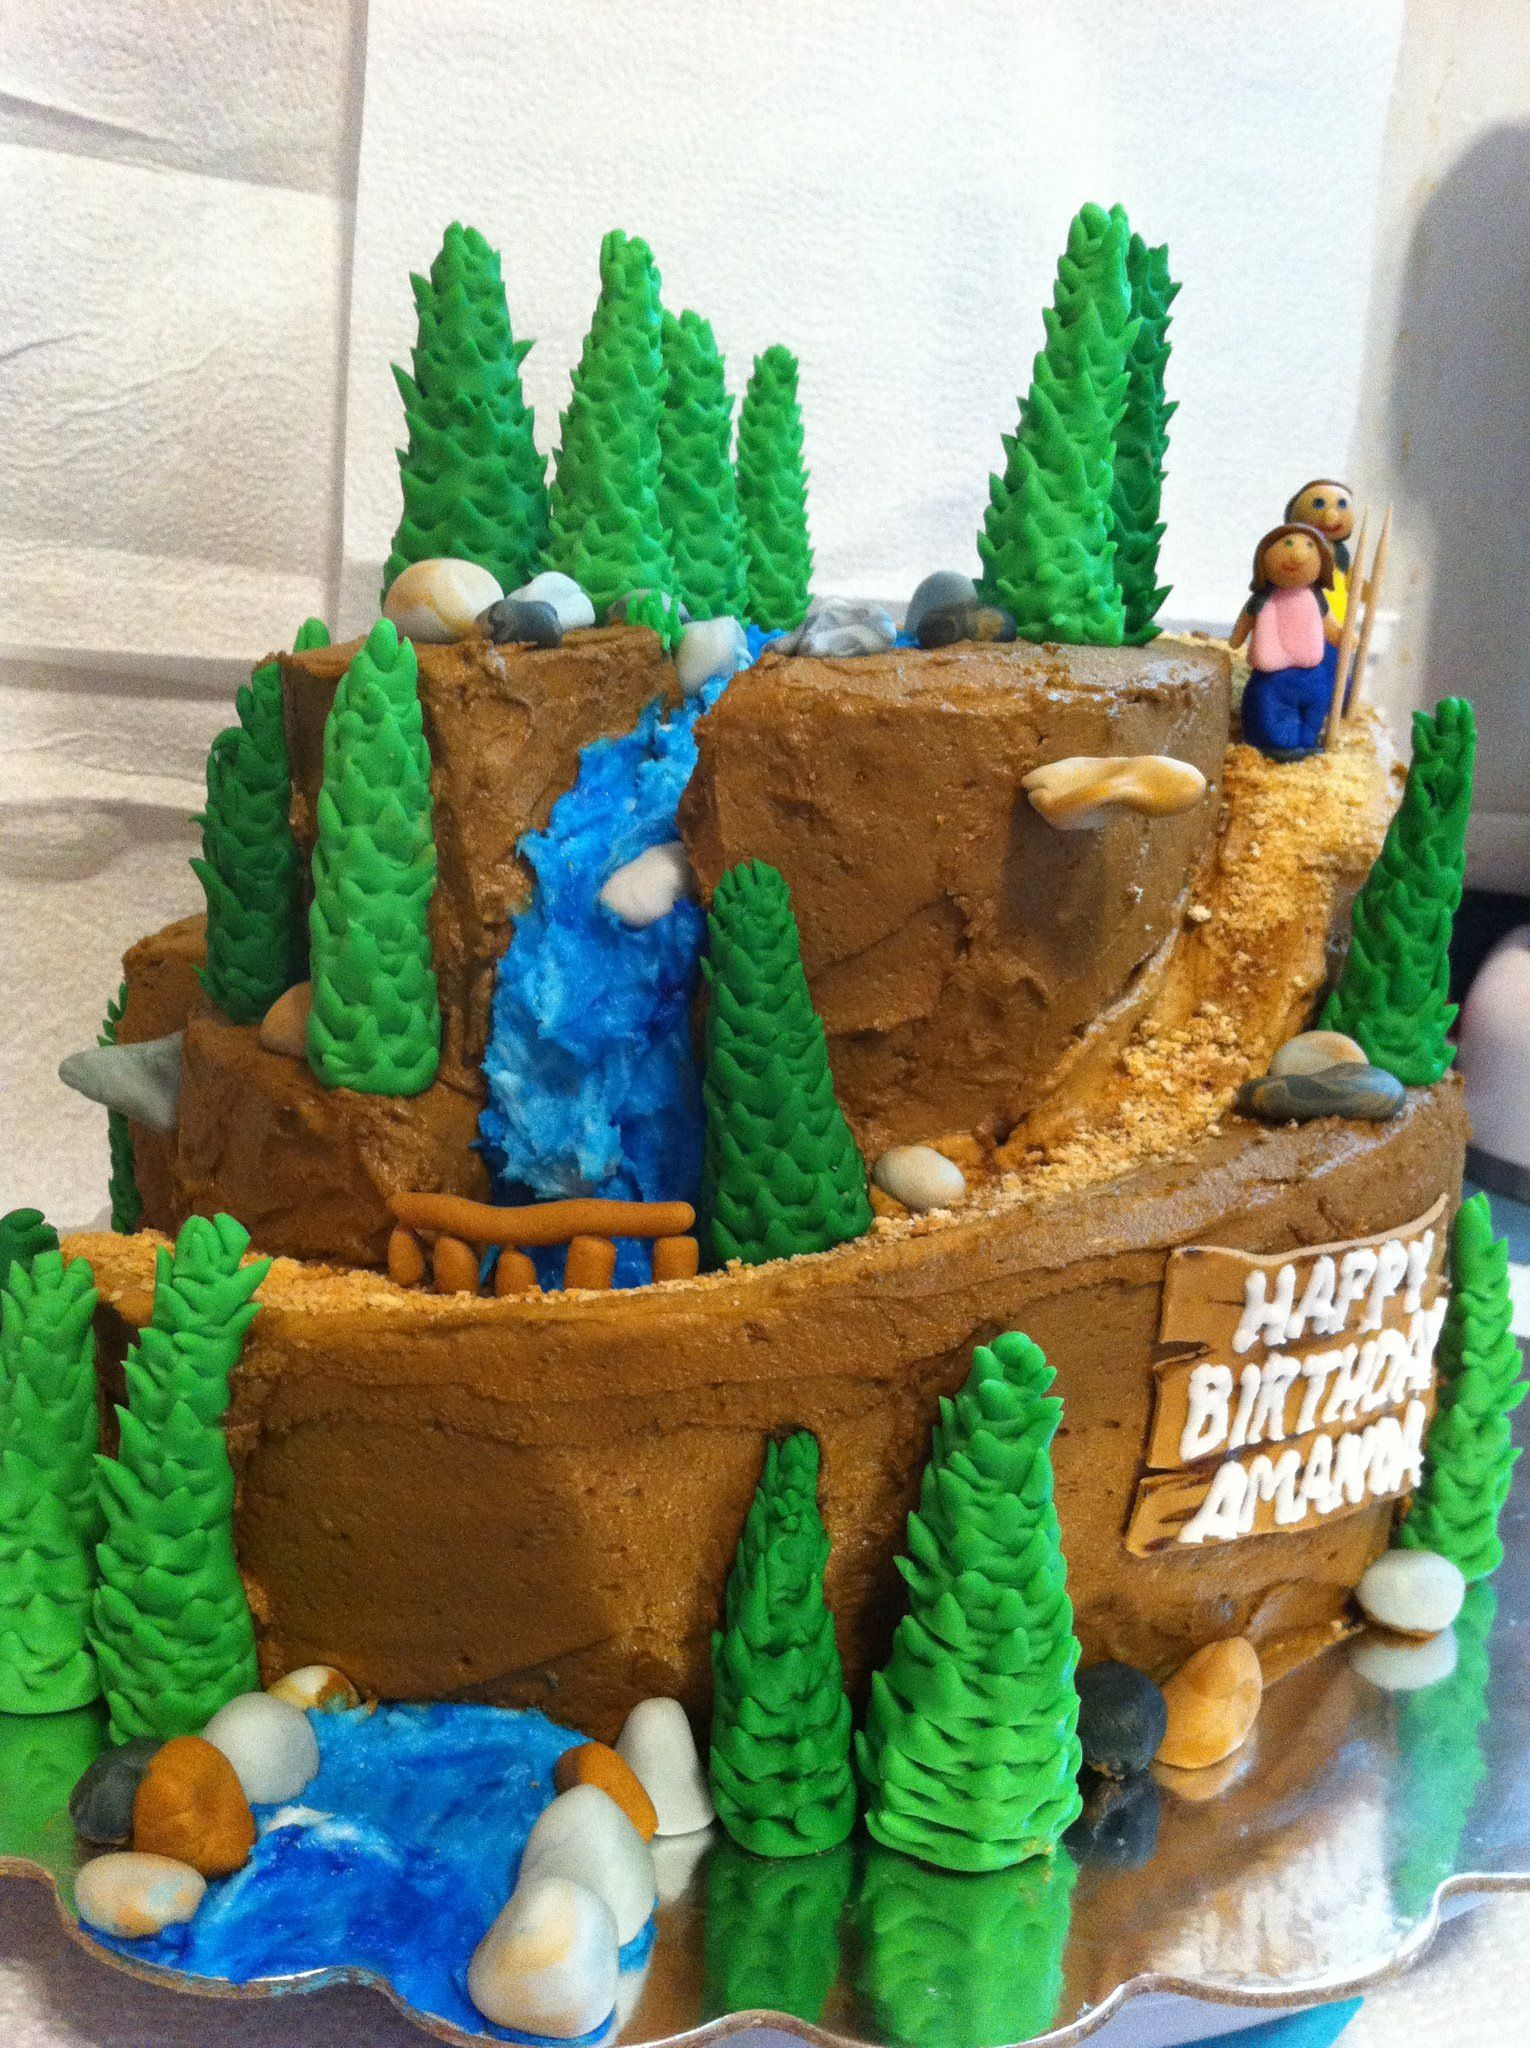 Hiking Cake Delicious Cake Pastry Cake Camping Cakes